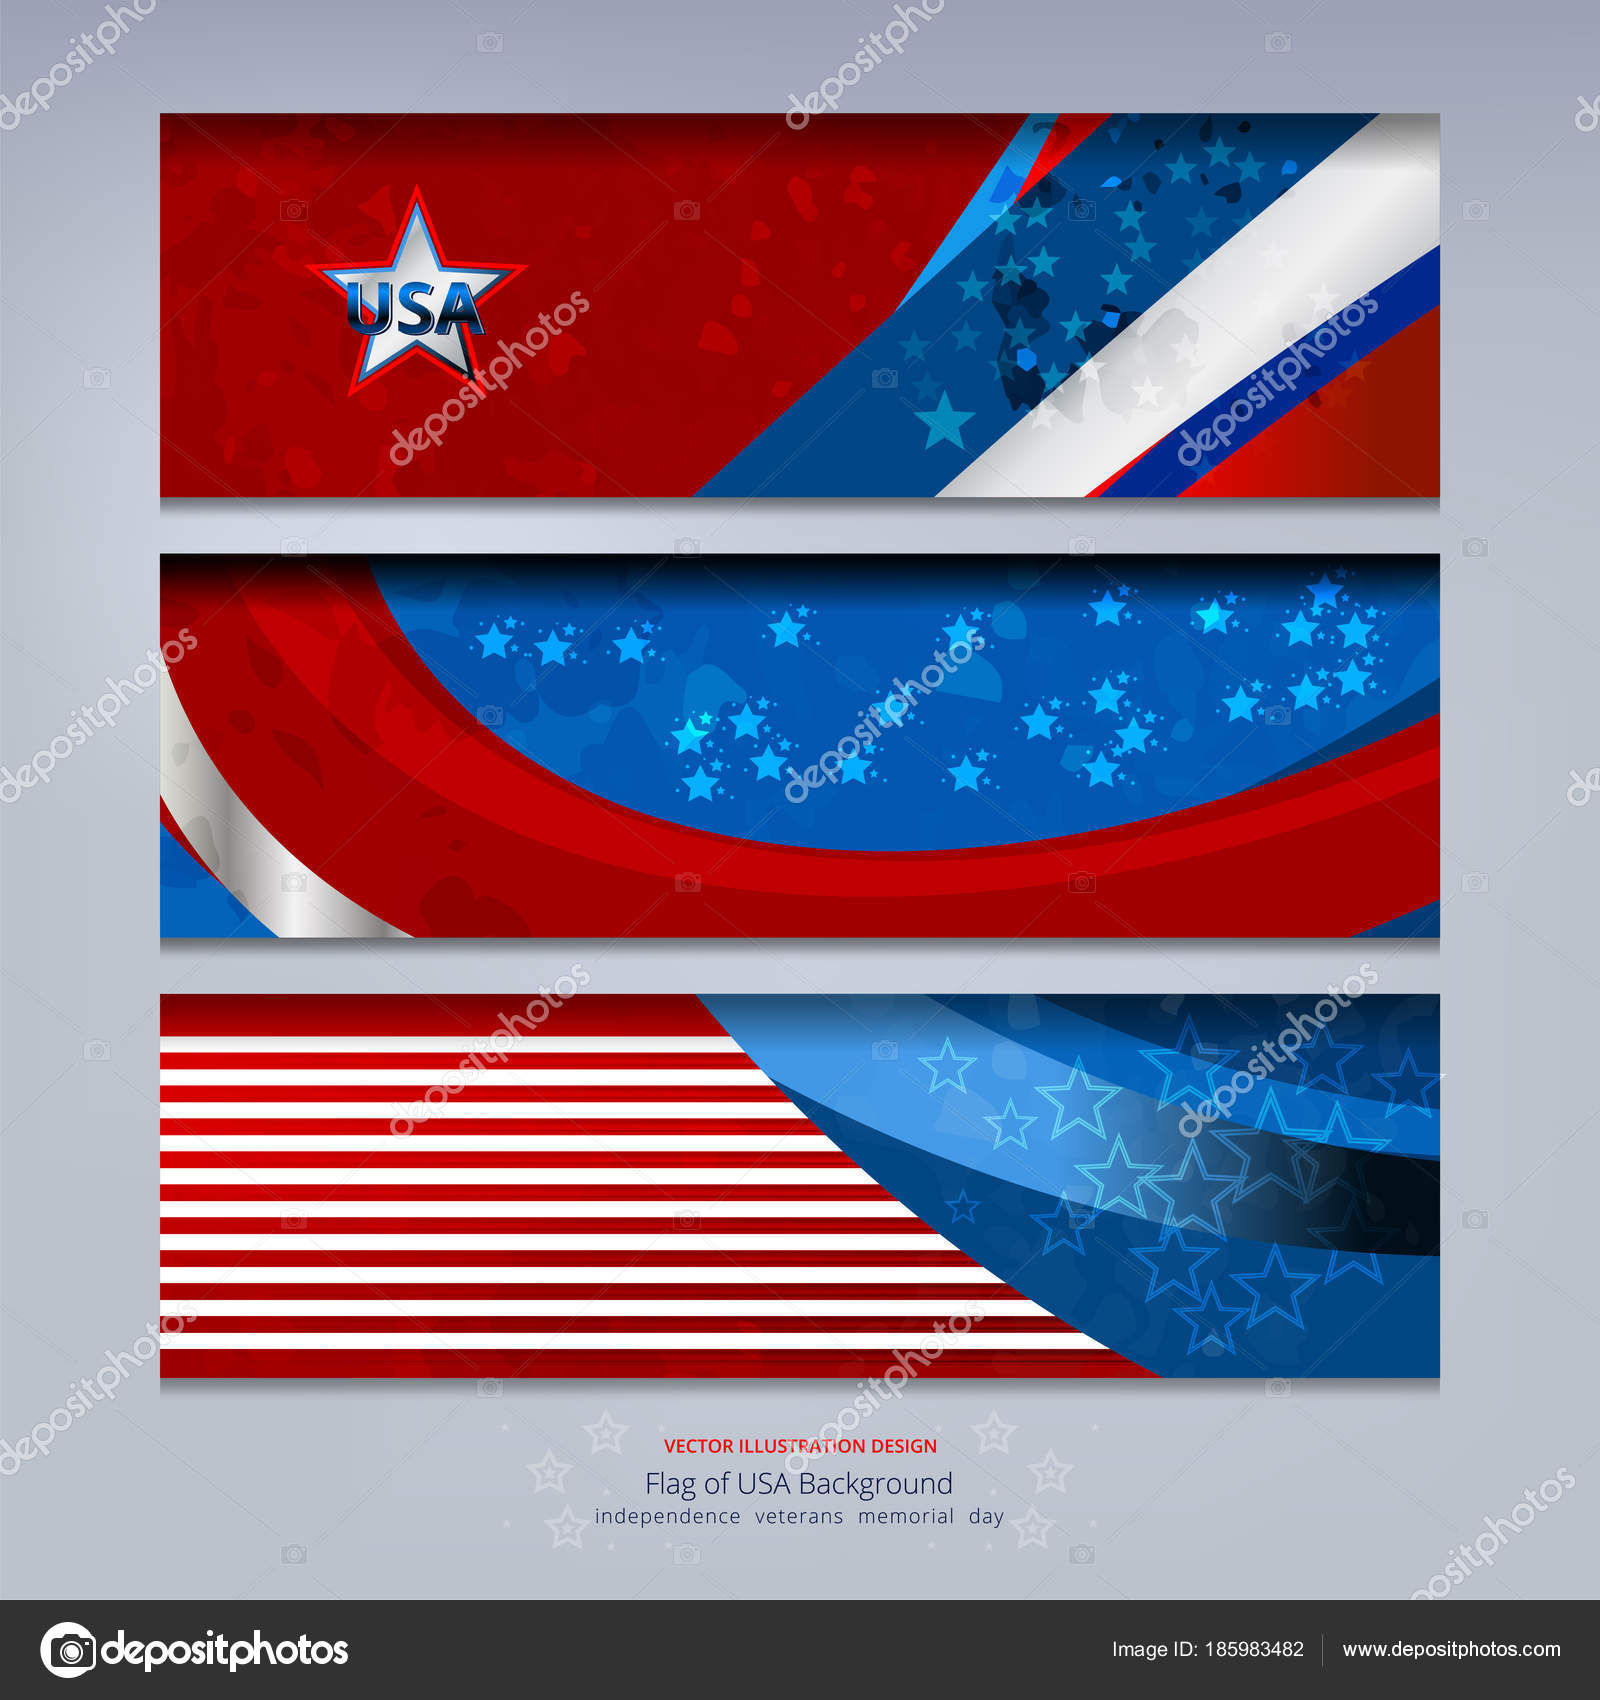 Flag Usa Banner Background Independence Veterans Labor Memorial Day Other Stock Vector C Ijaydesign99 185983482